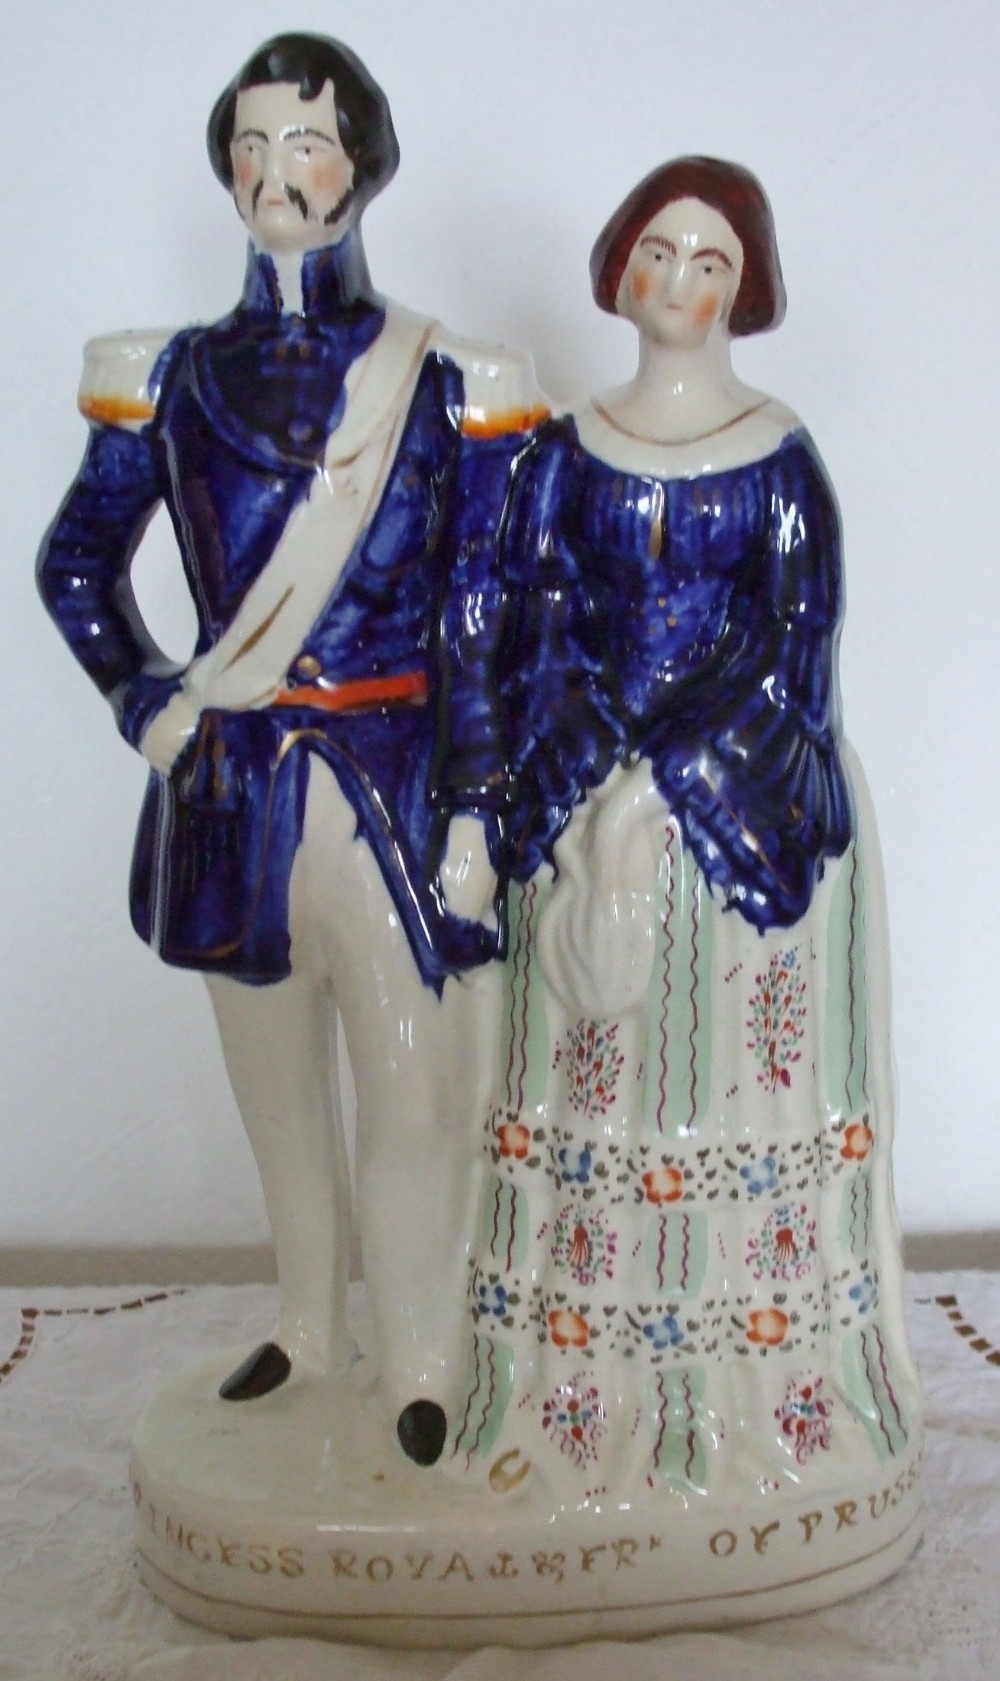 antique english victorian staffordshire pottery royal portrait figure princess royal and prince frederick william of prussia pugh fig 217 h 658